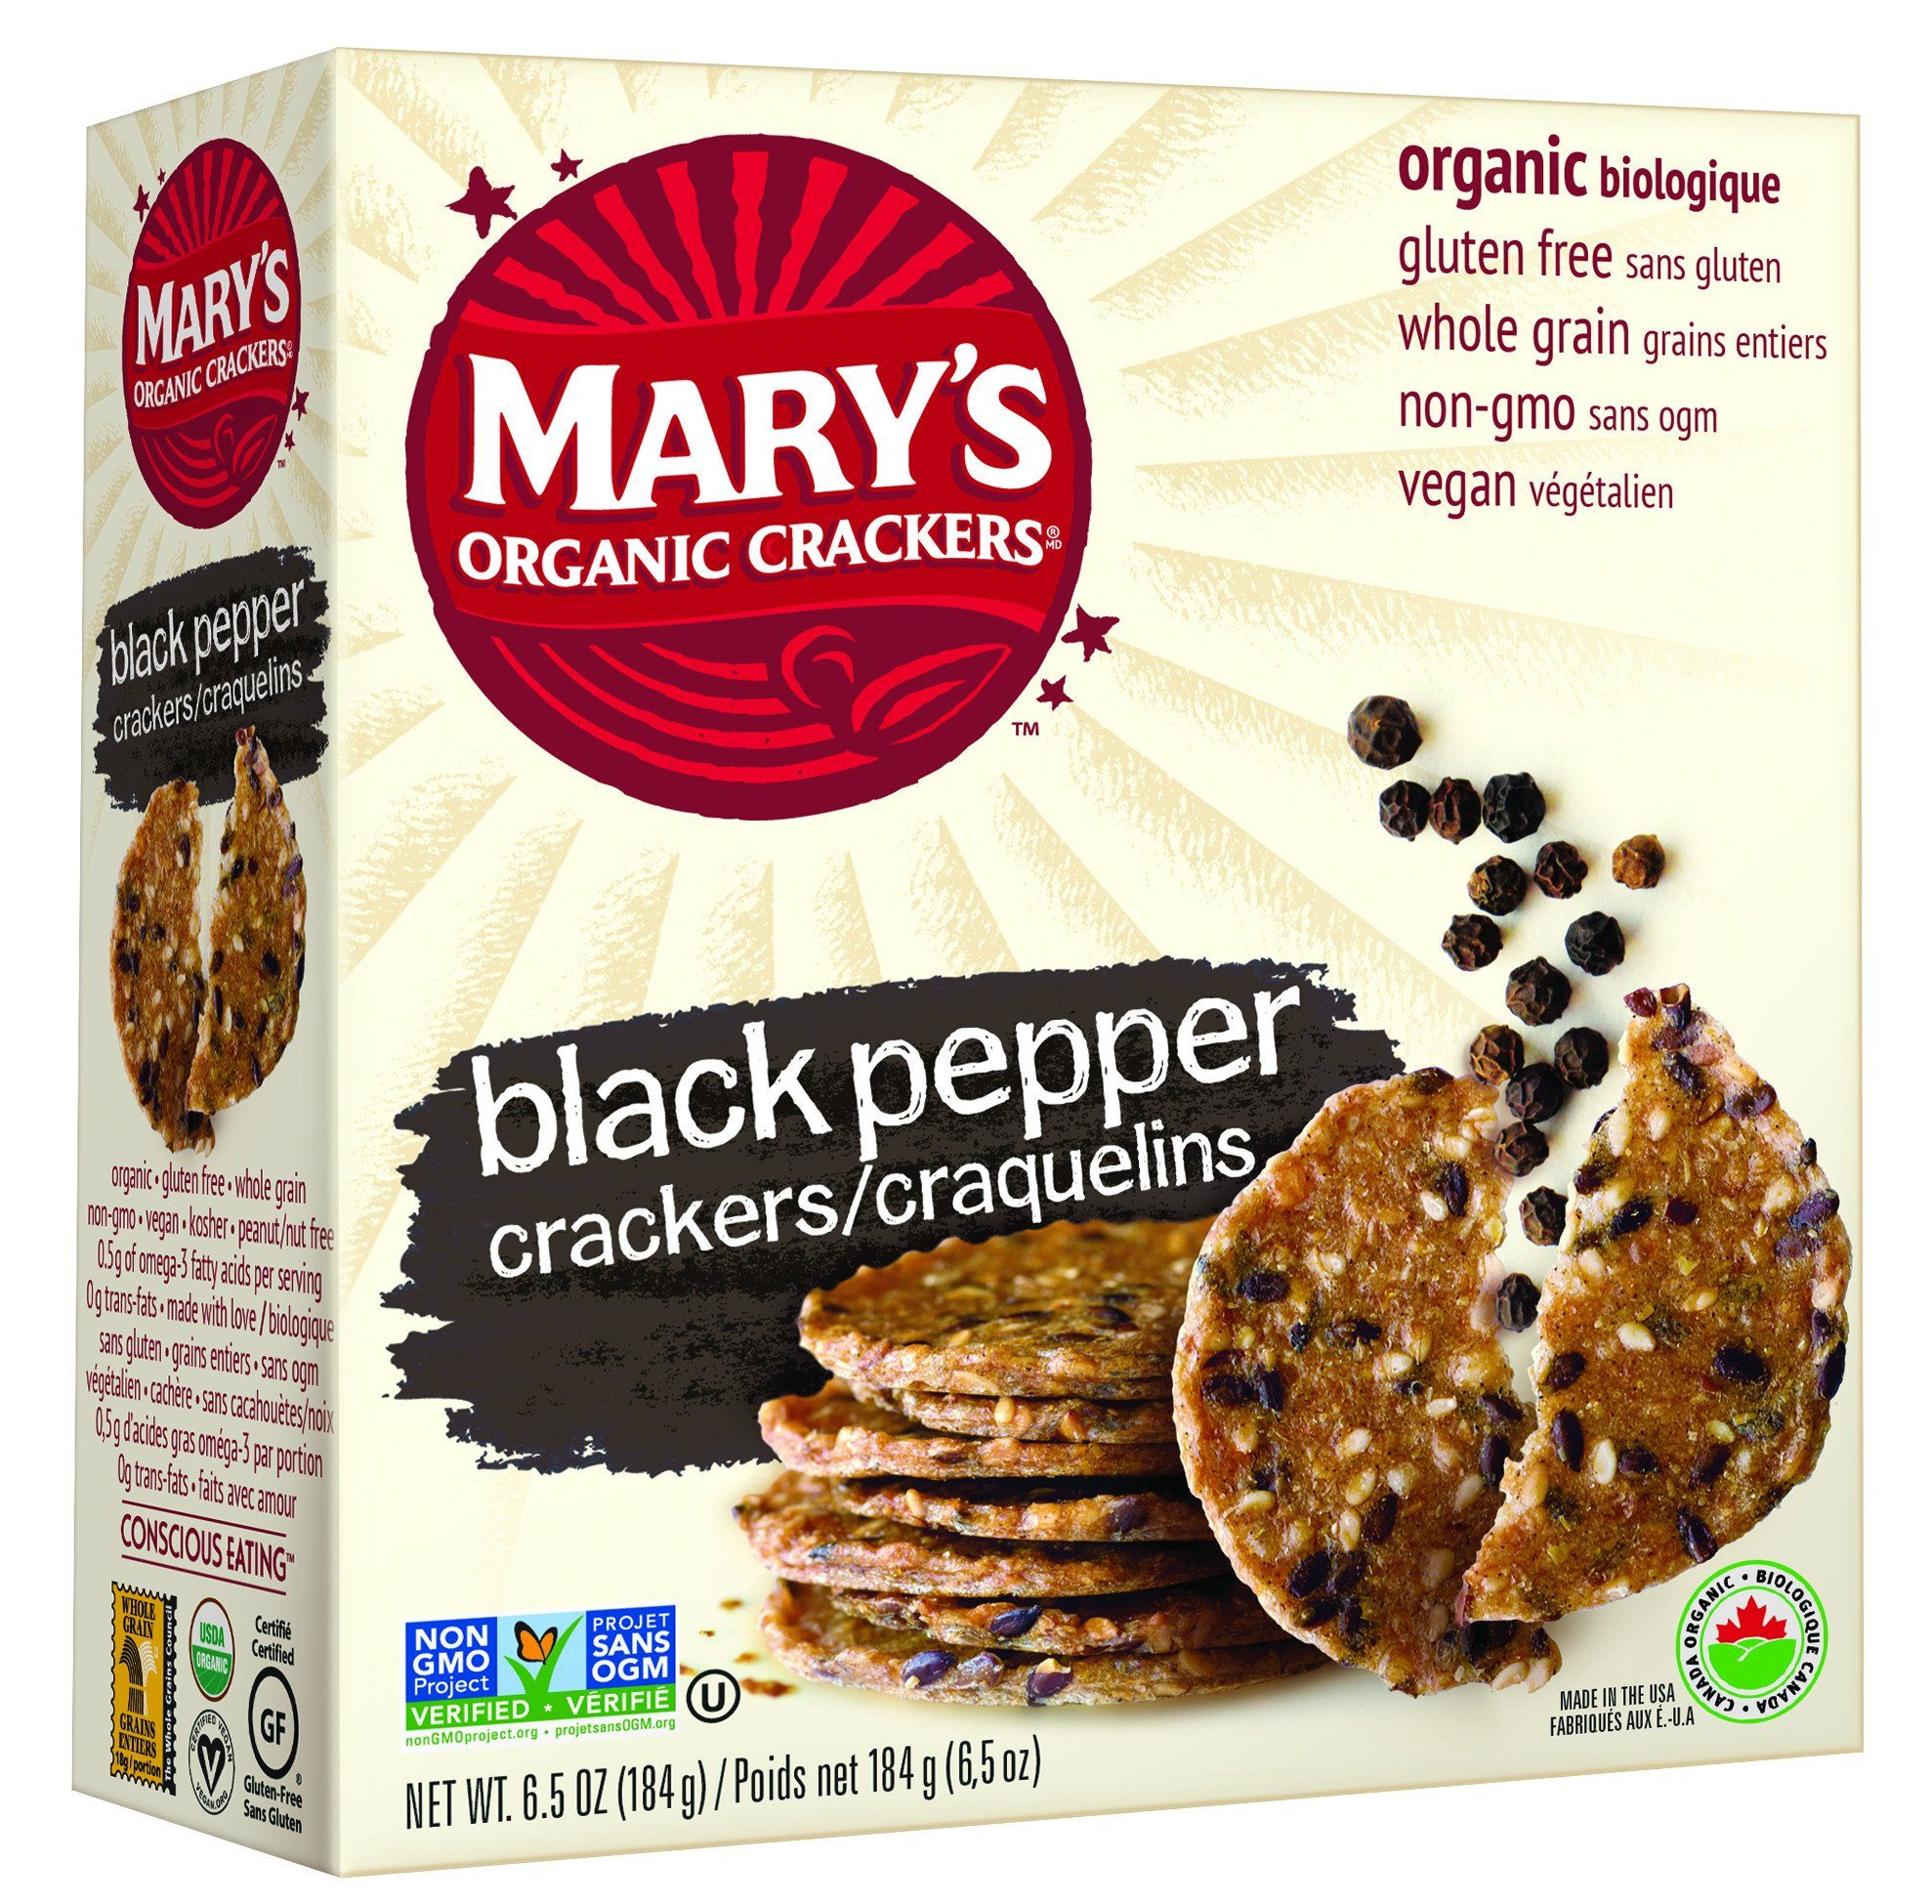 Food & Drink - Mary's Organic - Organic Black Pepper Crackers, 184g